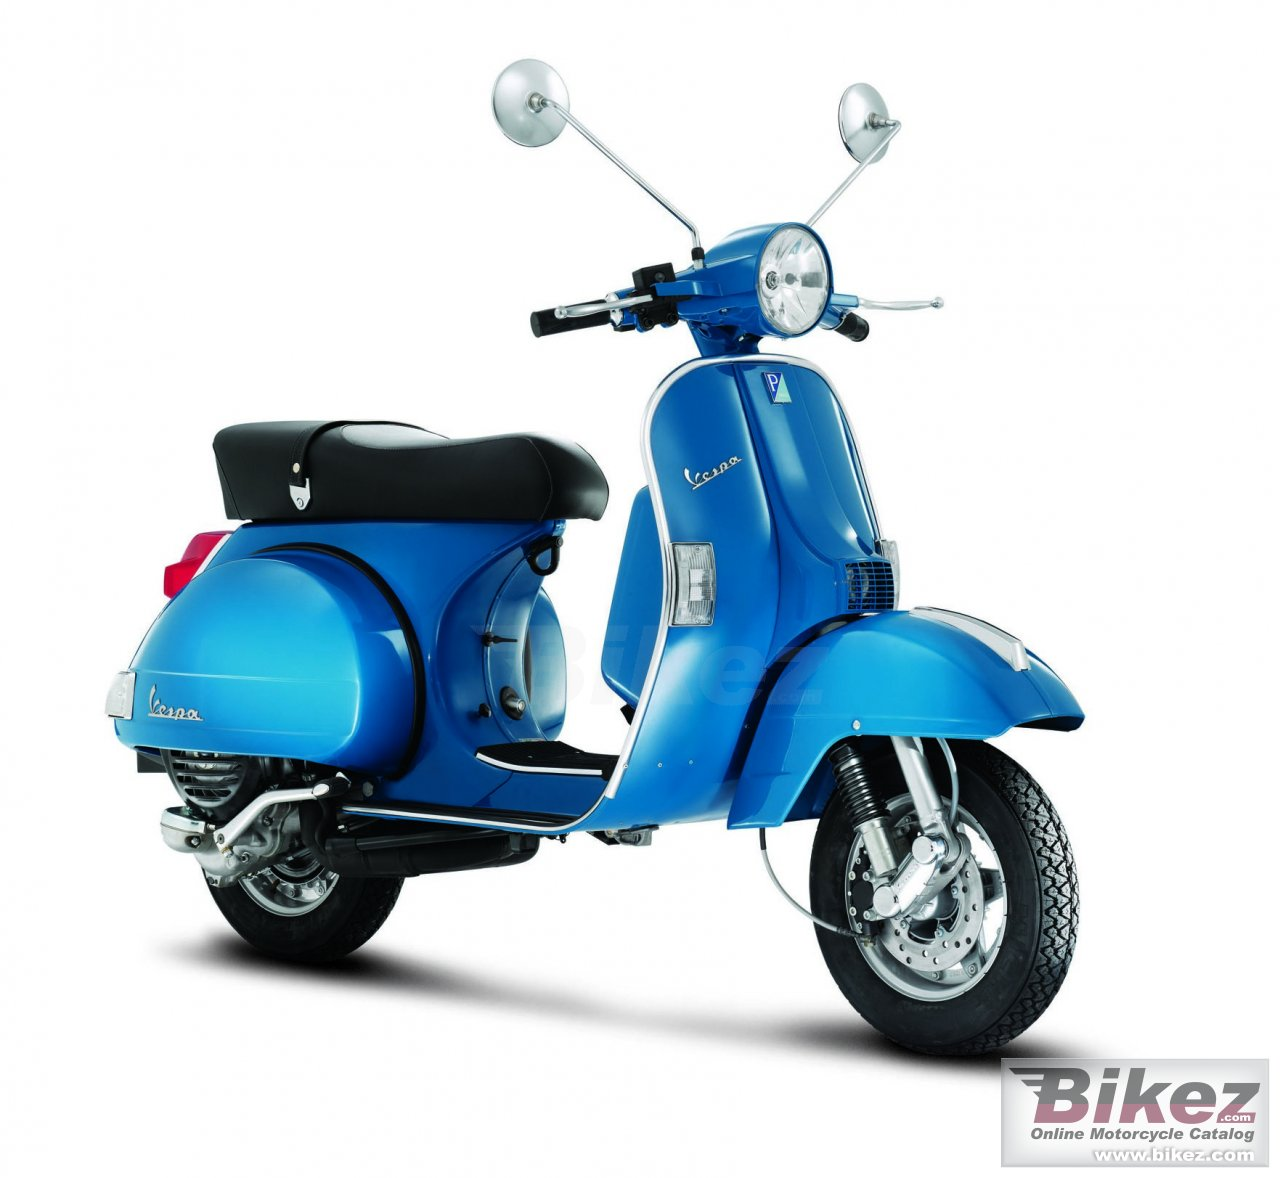 Big Vespa px 150 picture and wallpaper from Bikez.com